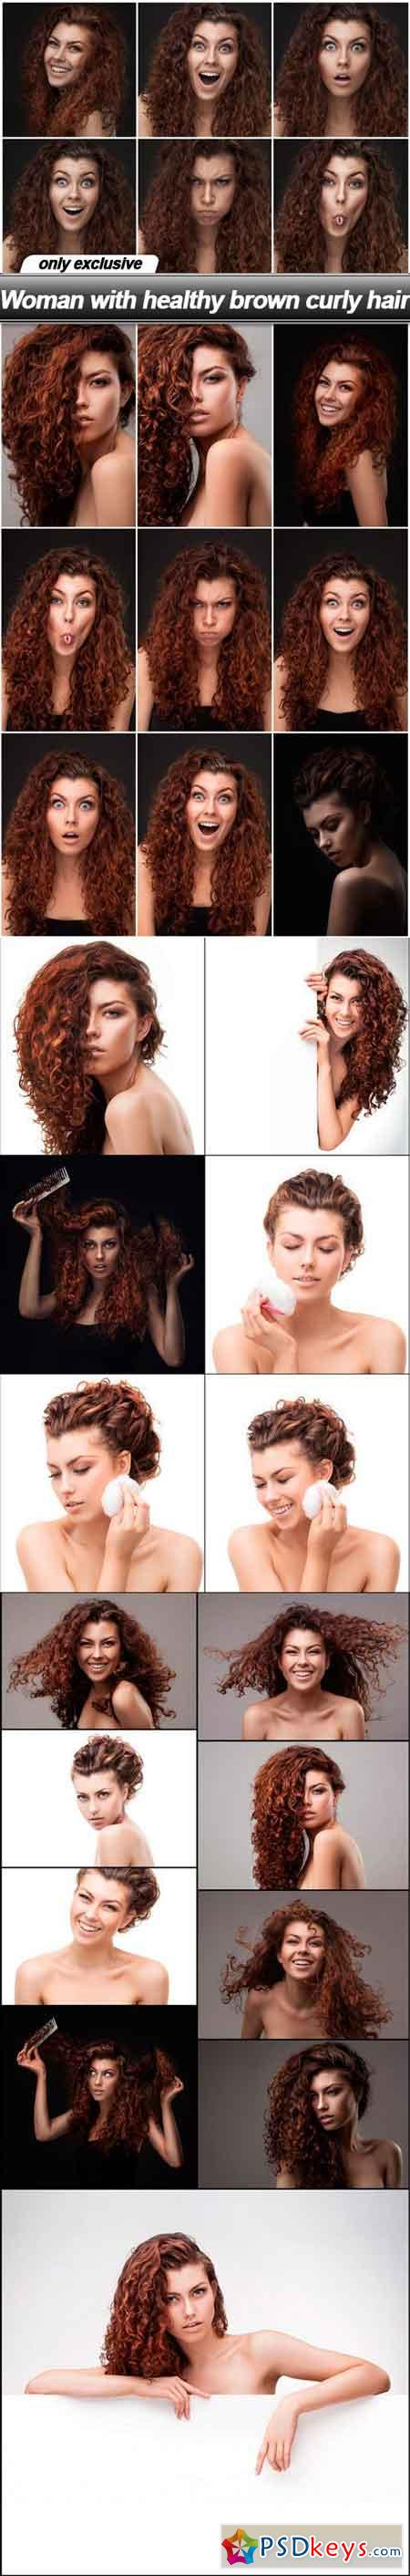 Woman with healthy brown curly hair - 25 UHQ JPEG